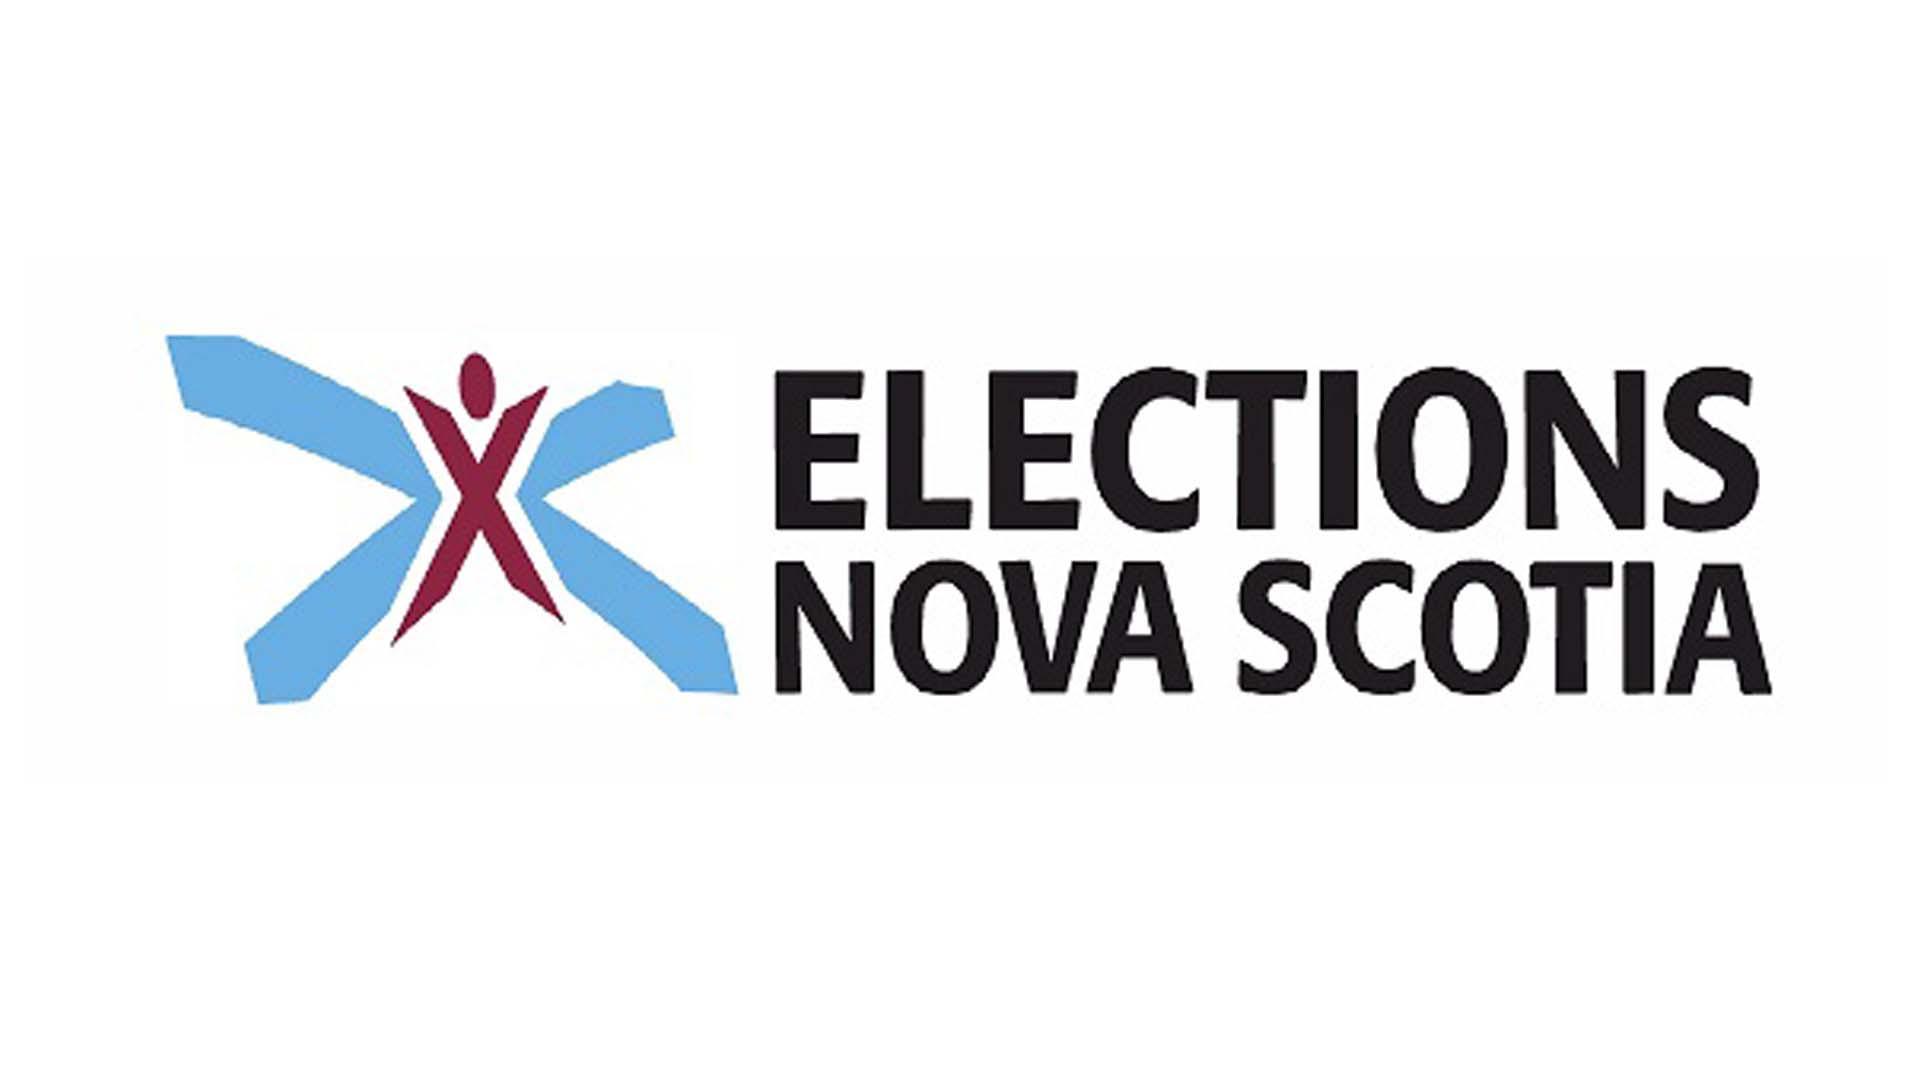 No early ballots stolen during break-in at returning office, says Elections Nova Scotia